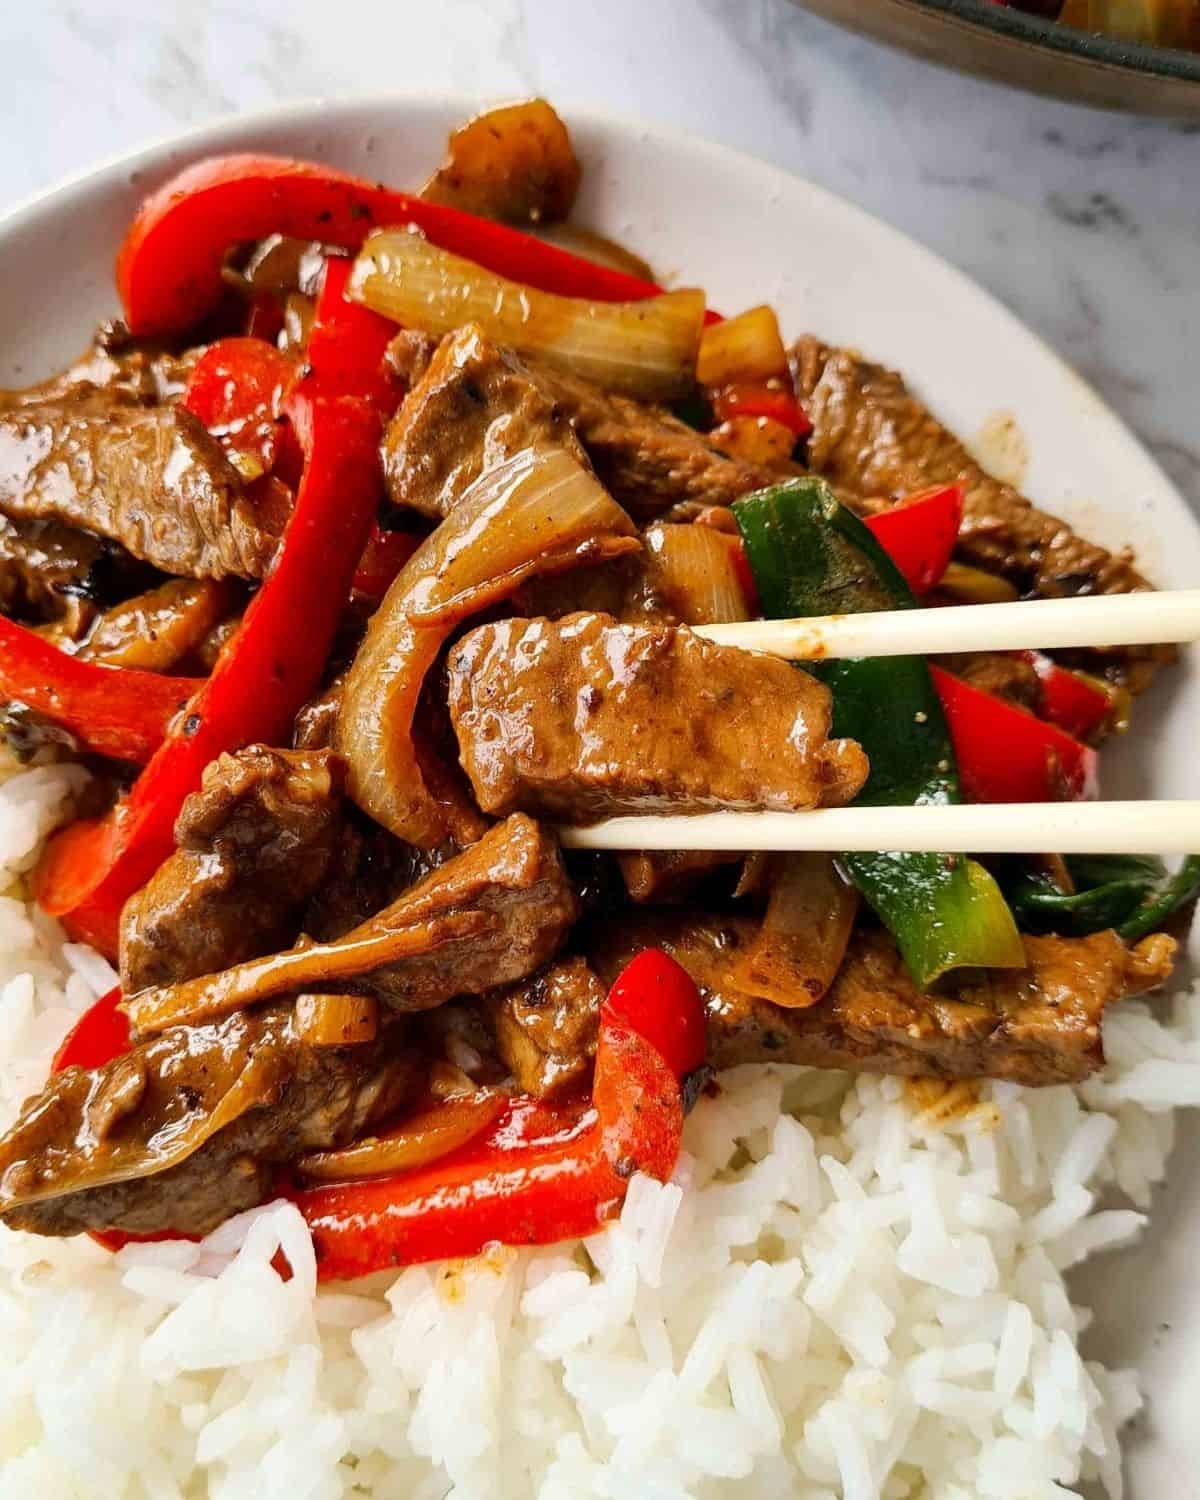 Extrem close up of cooked beef and vegetables coverd in glossy sauce with a side of rice on a plate.